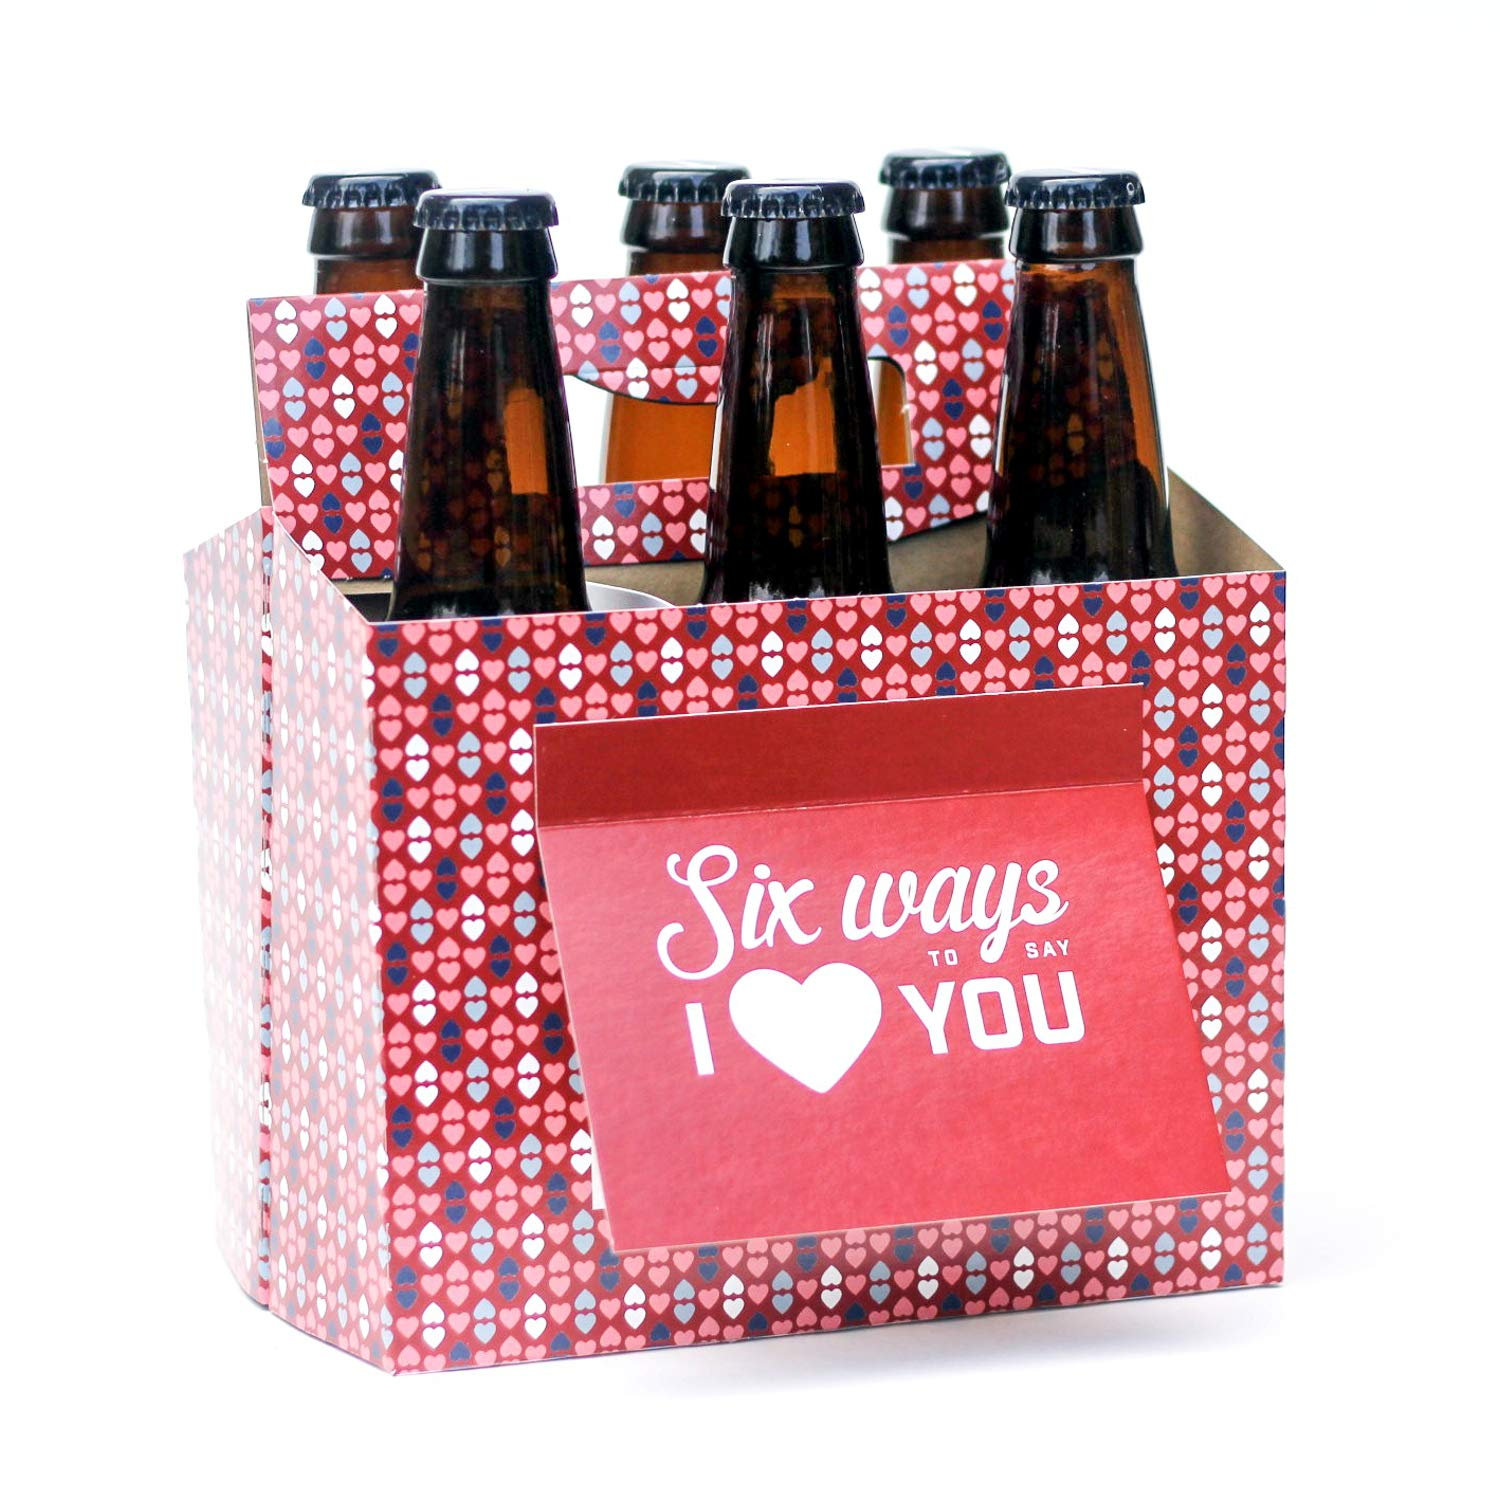 Gift Basket Ideas for Men - Anniversary or Just Because